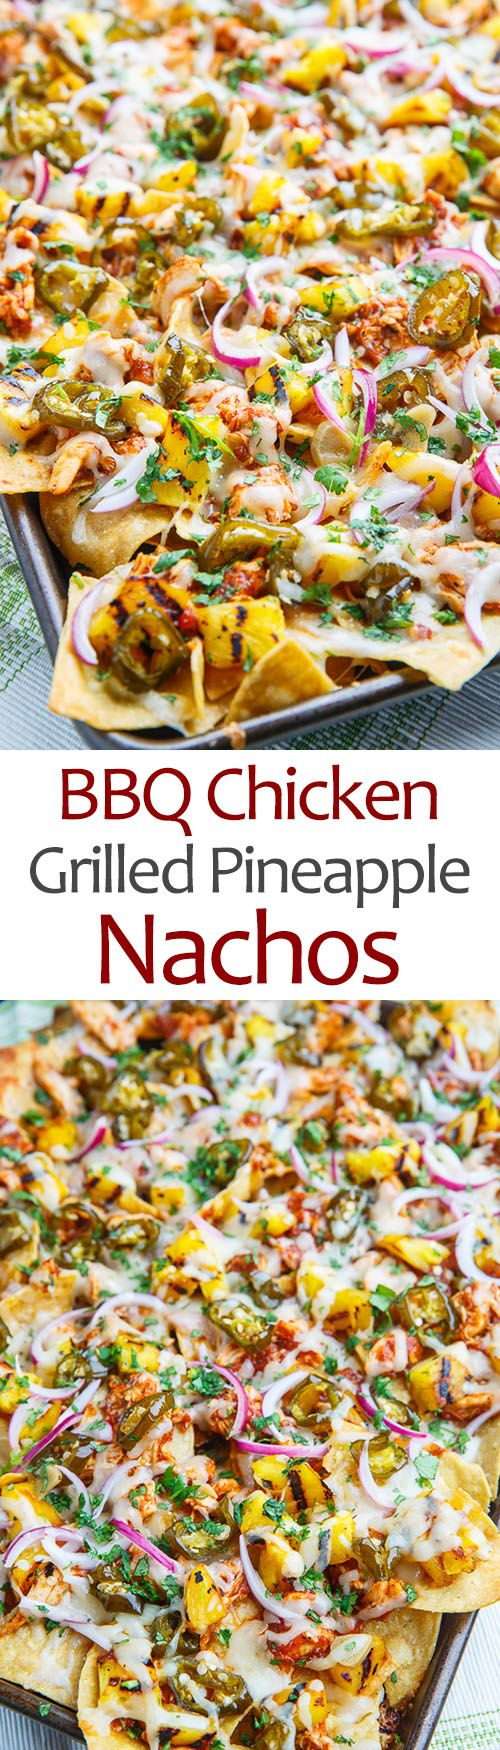 BBQ Chicken and Grilled Pineapple Nachos